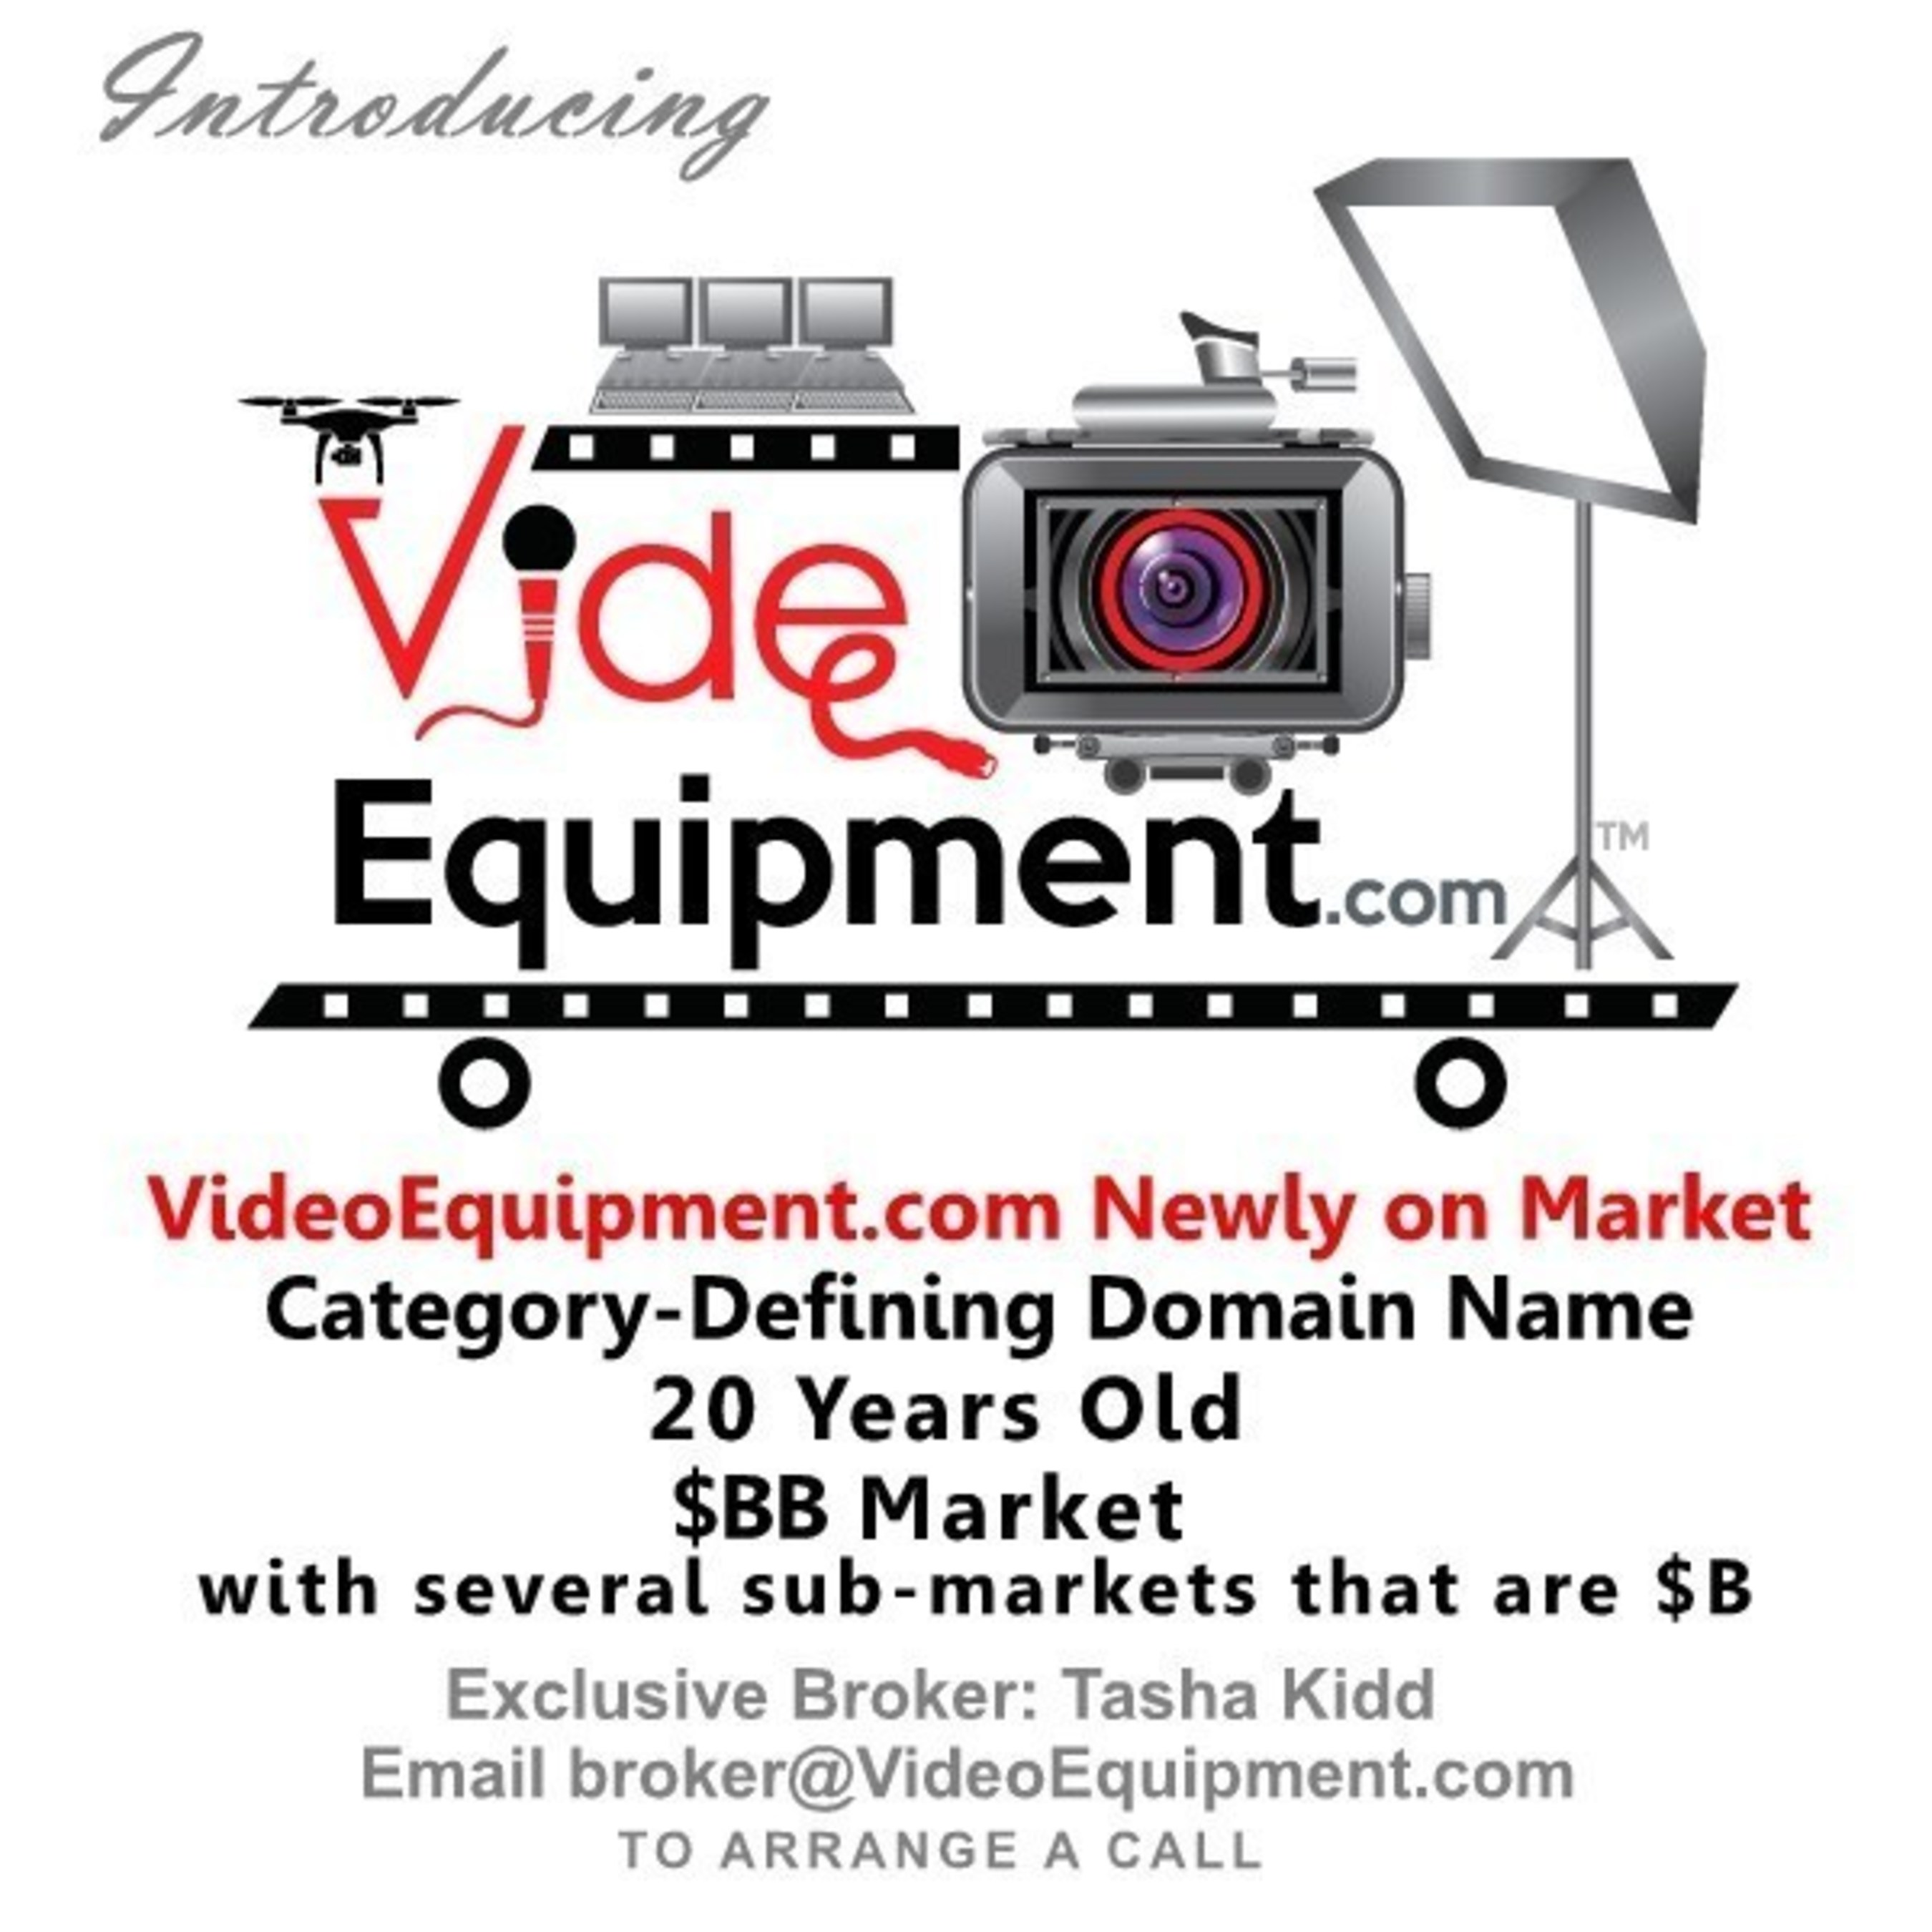 VideoEquipment.com: Rare Category-Defining Domain Name for Video Equipment Industry Goes on Market